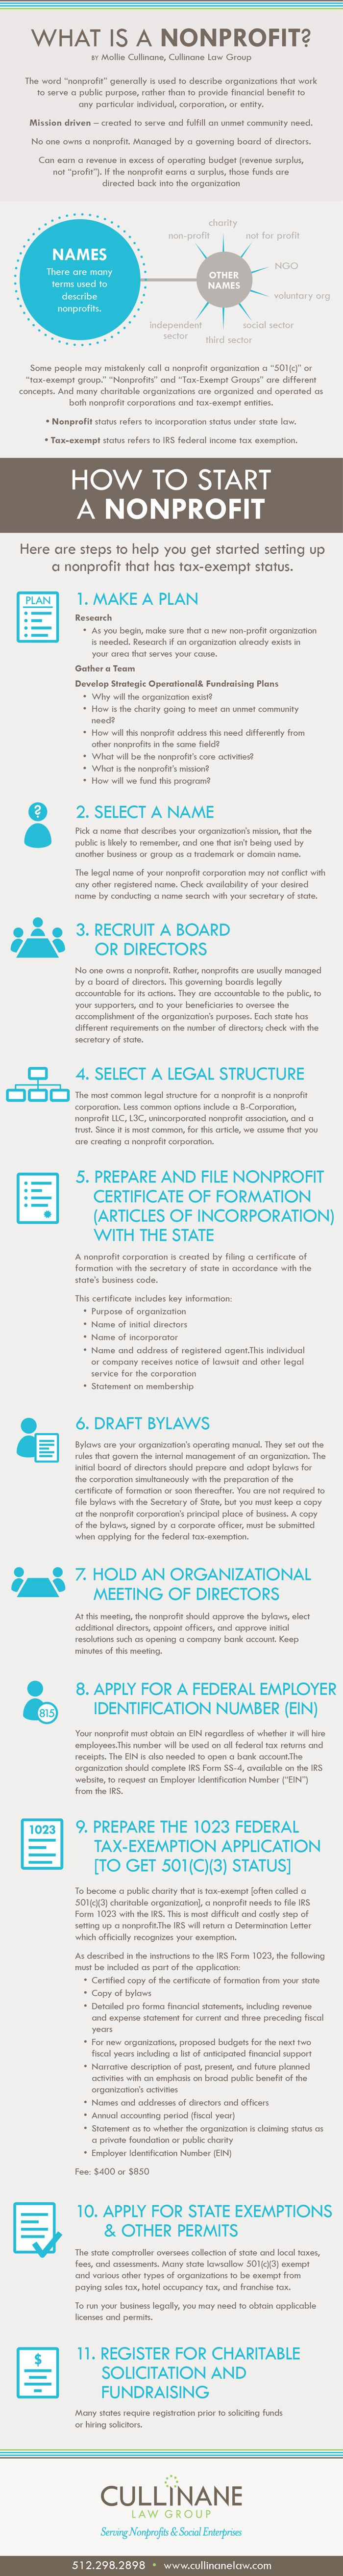 molliecullinane-How to start a nonprofit http://cullinanelaw.com/nonprofit-law-basics-how-do-i-form-a-501c3-nonprofit-corporation/#.U2lDJxZaorw